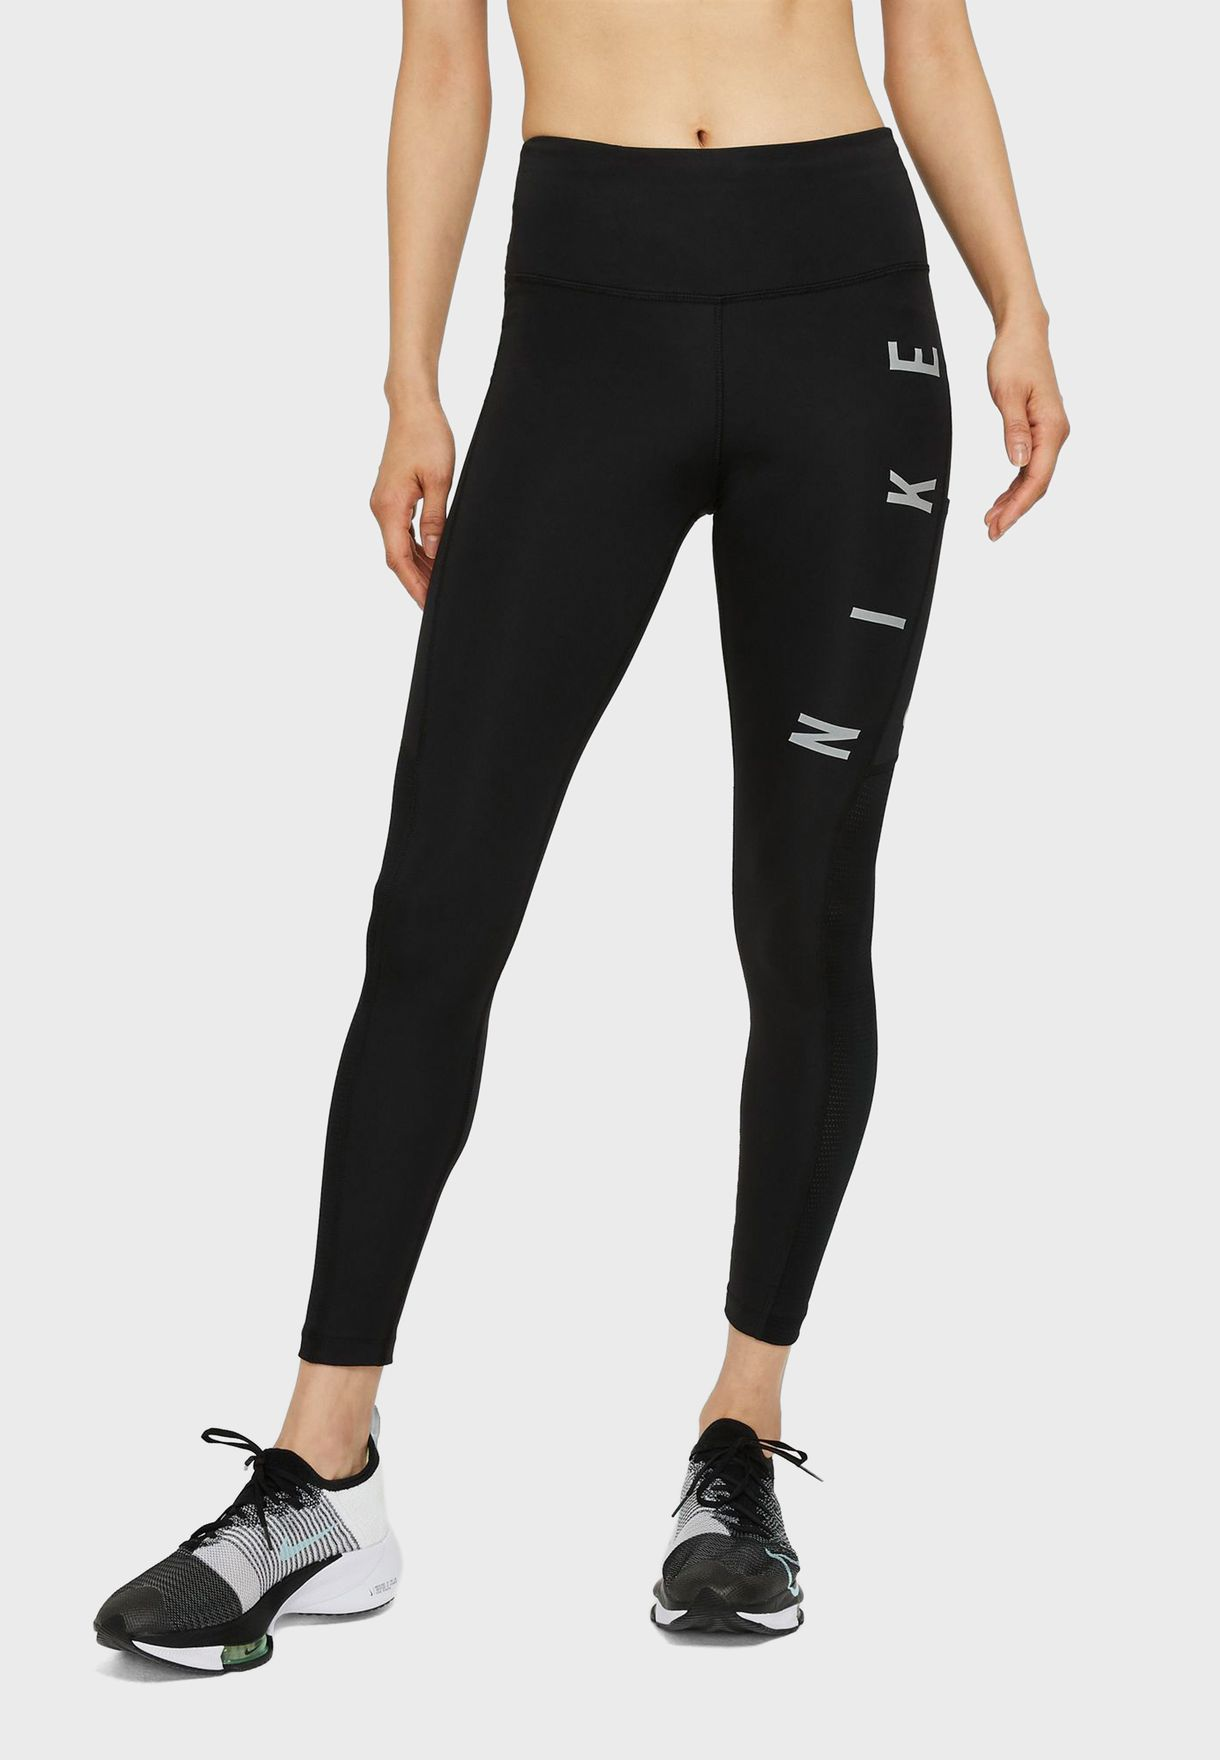 Reflective Epic Run Graphic Leggings